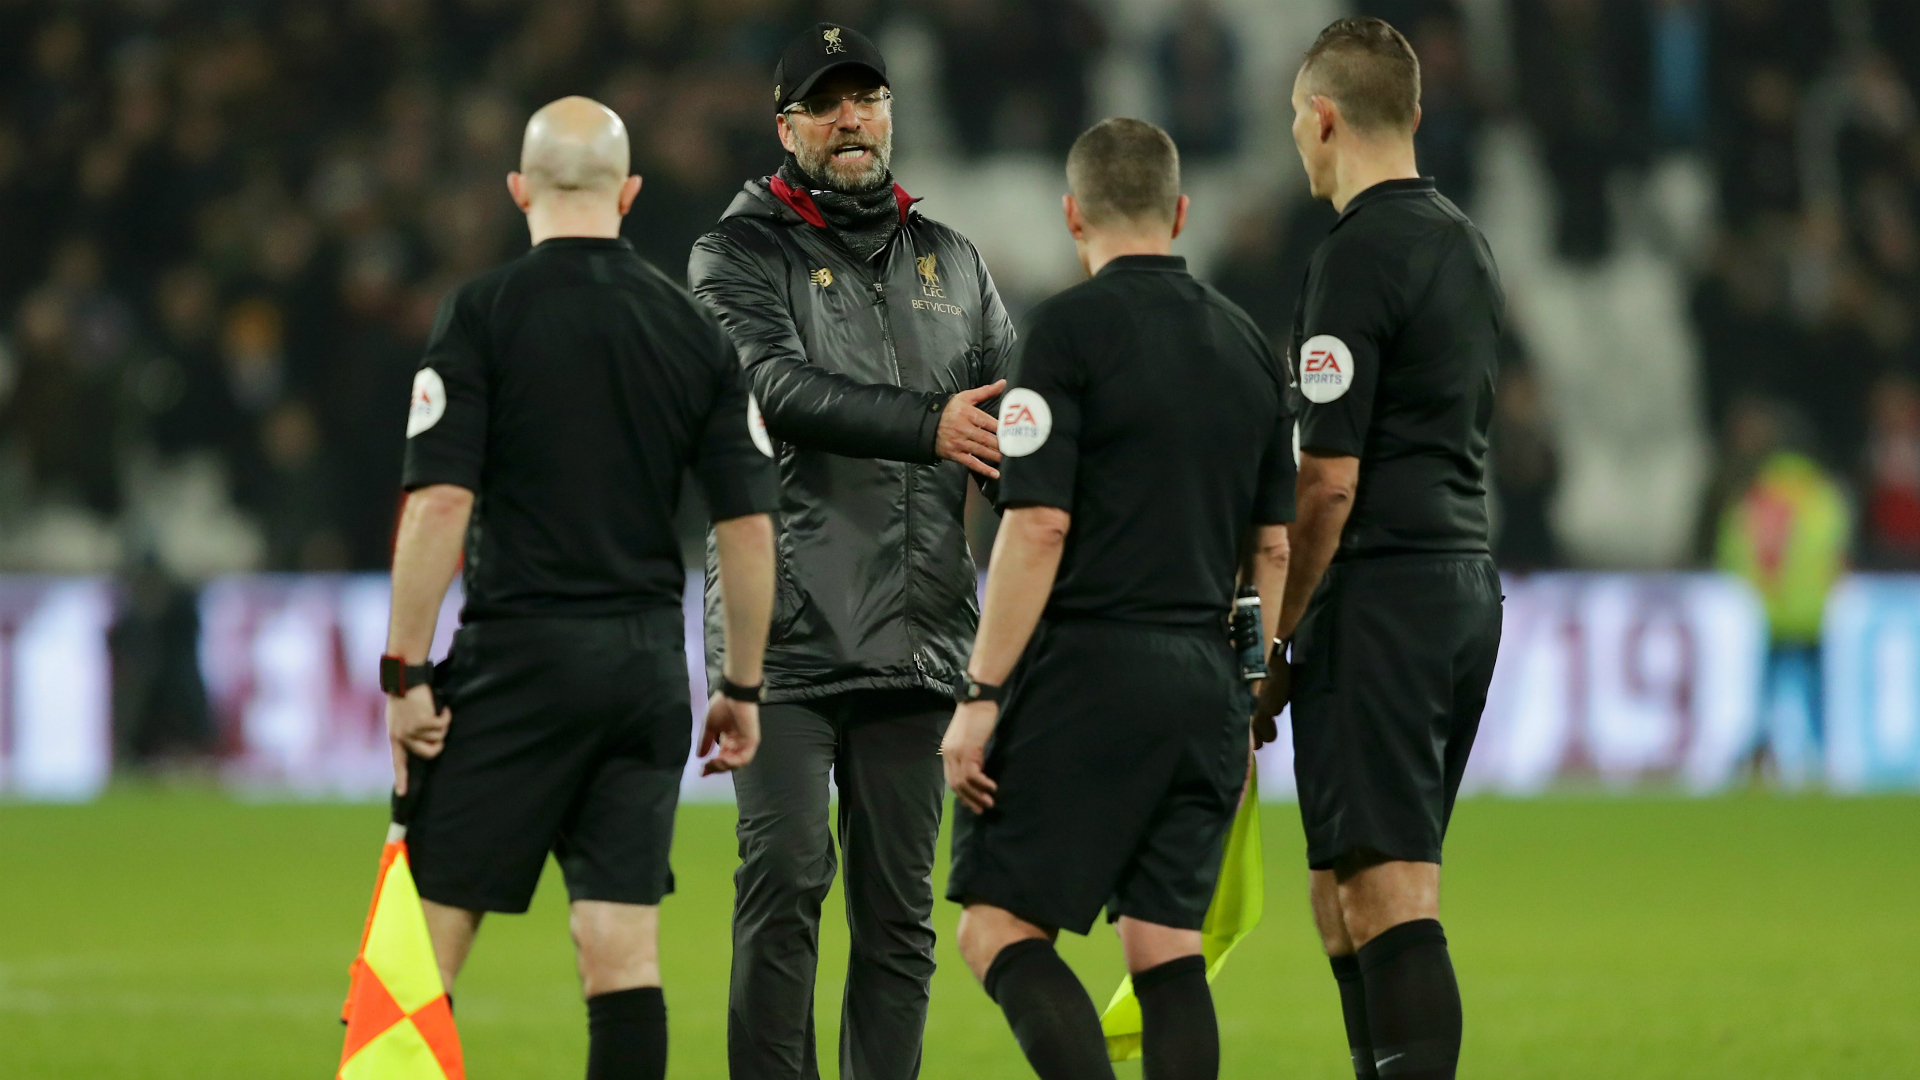 FA charge Liverpool boss Klopp over referee comments